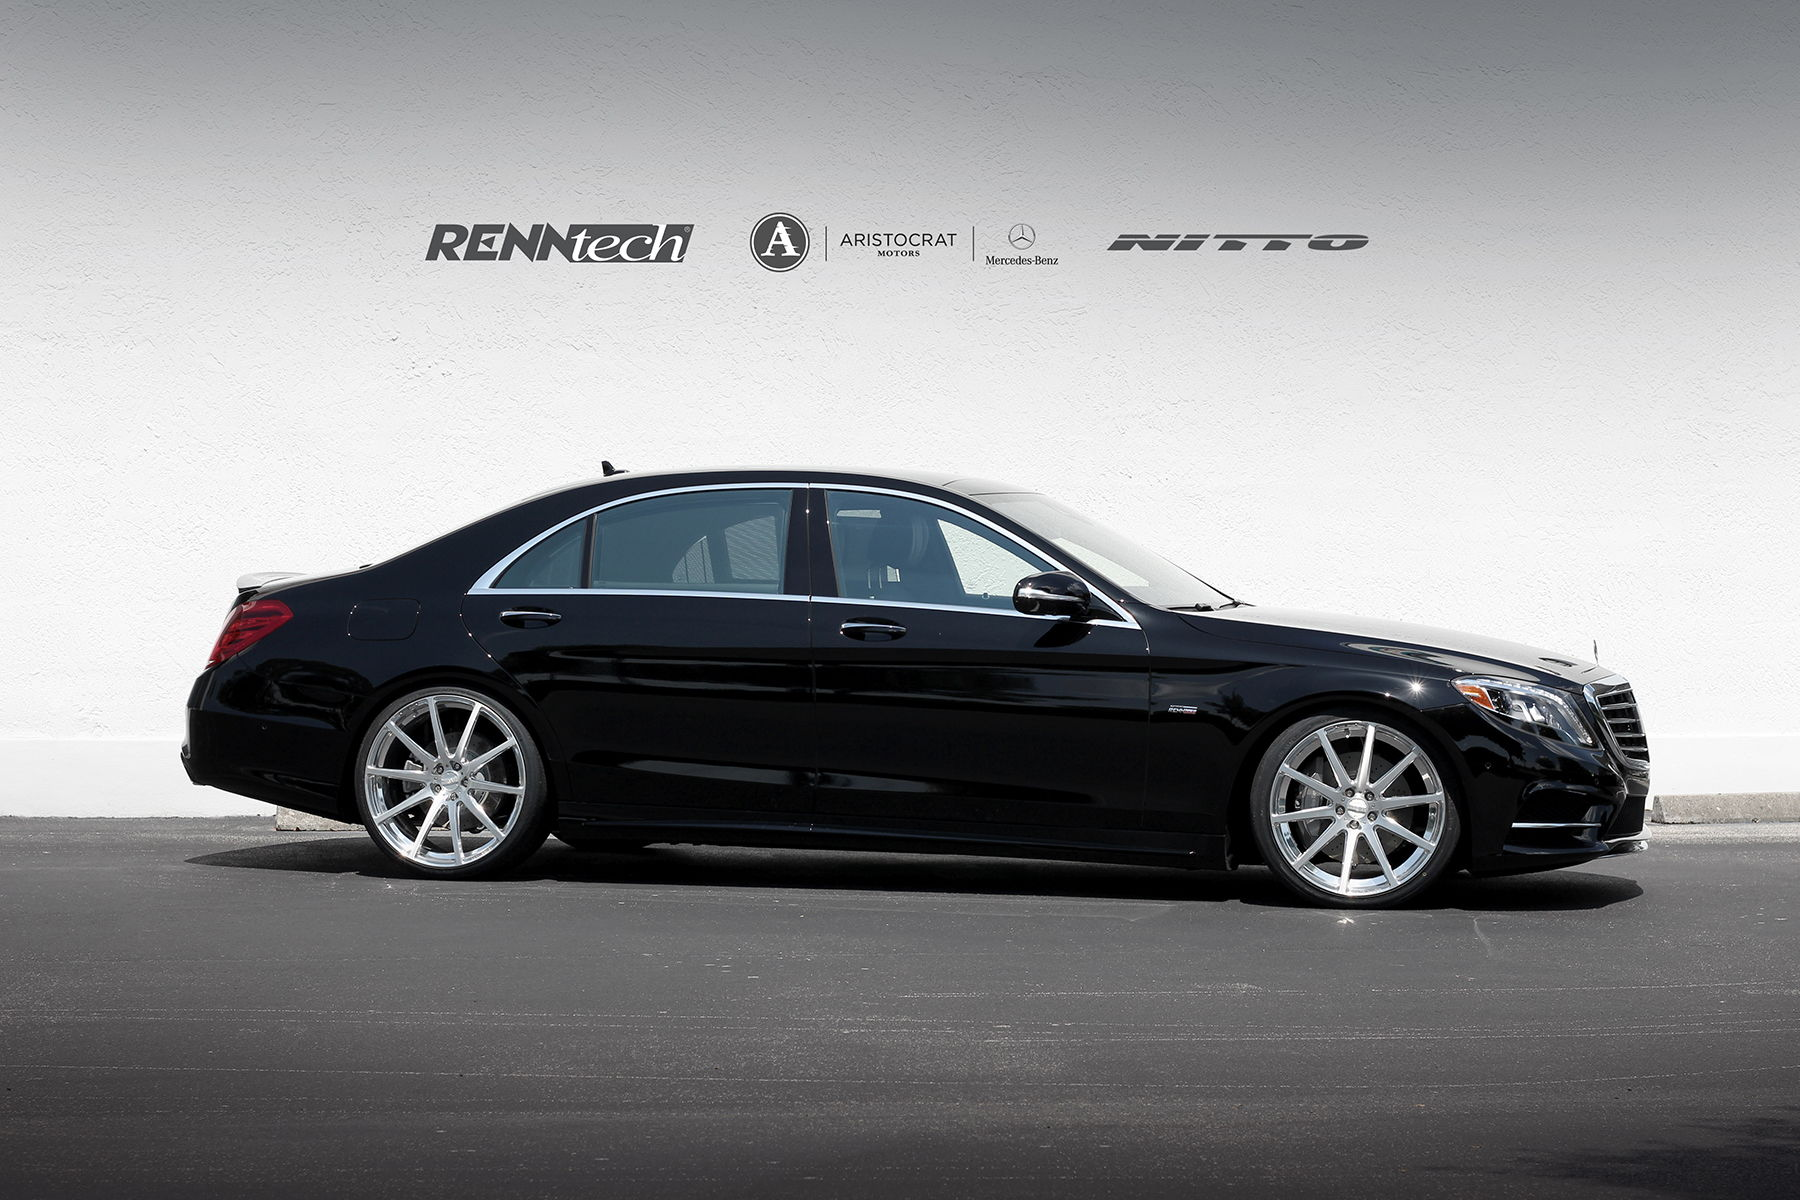 mercedes benz s 550 renntech aristocrat mbworld